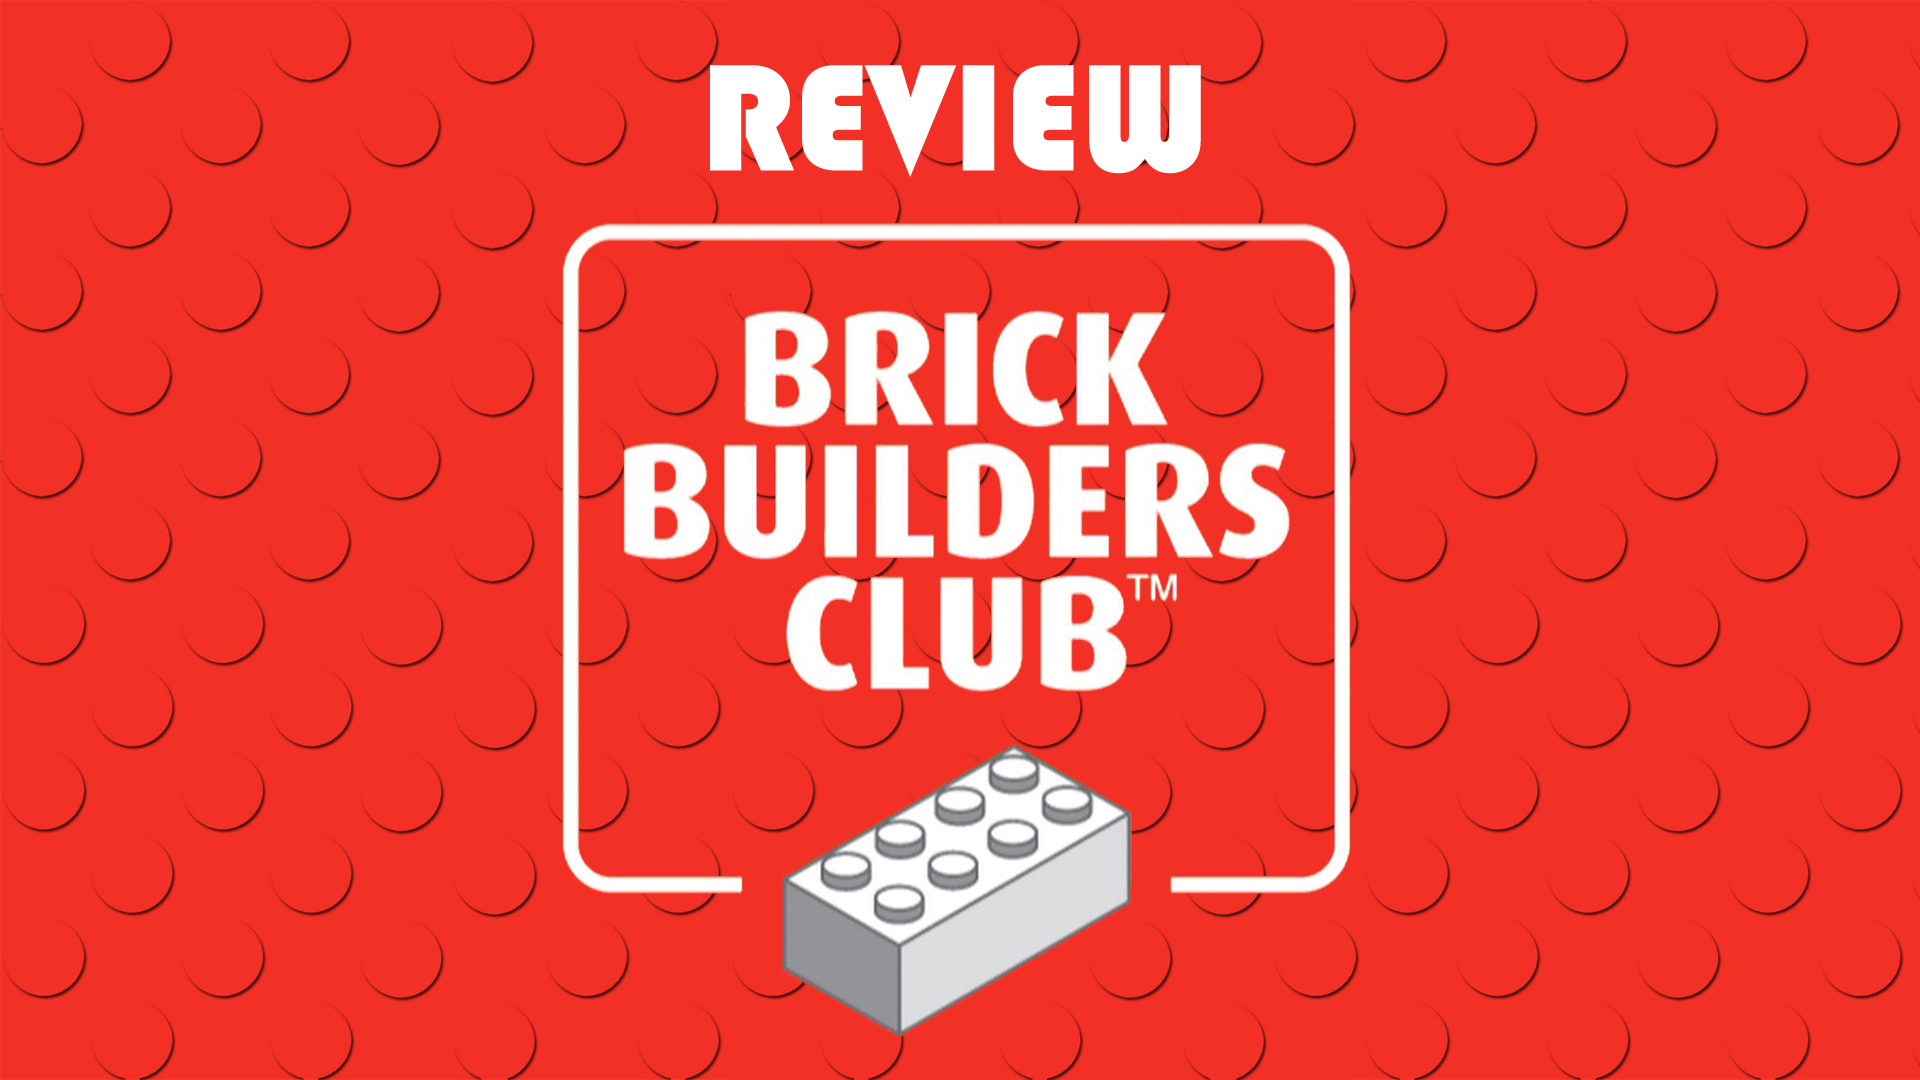 Brick Builders Club:  March 2016 Review